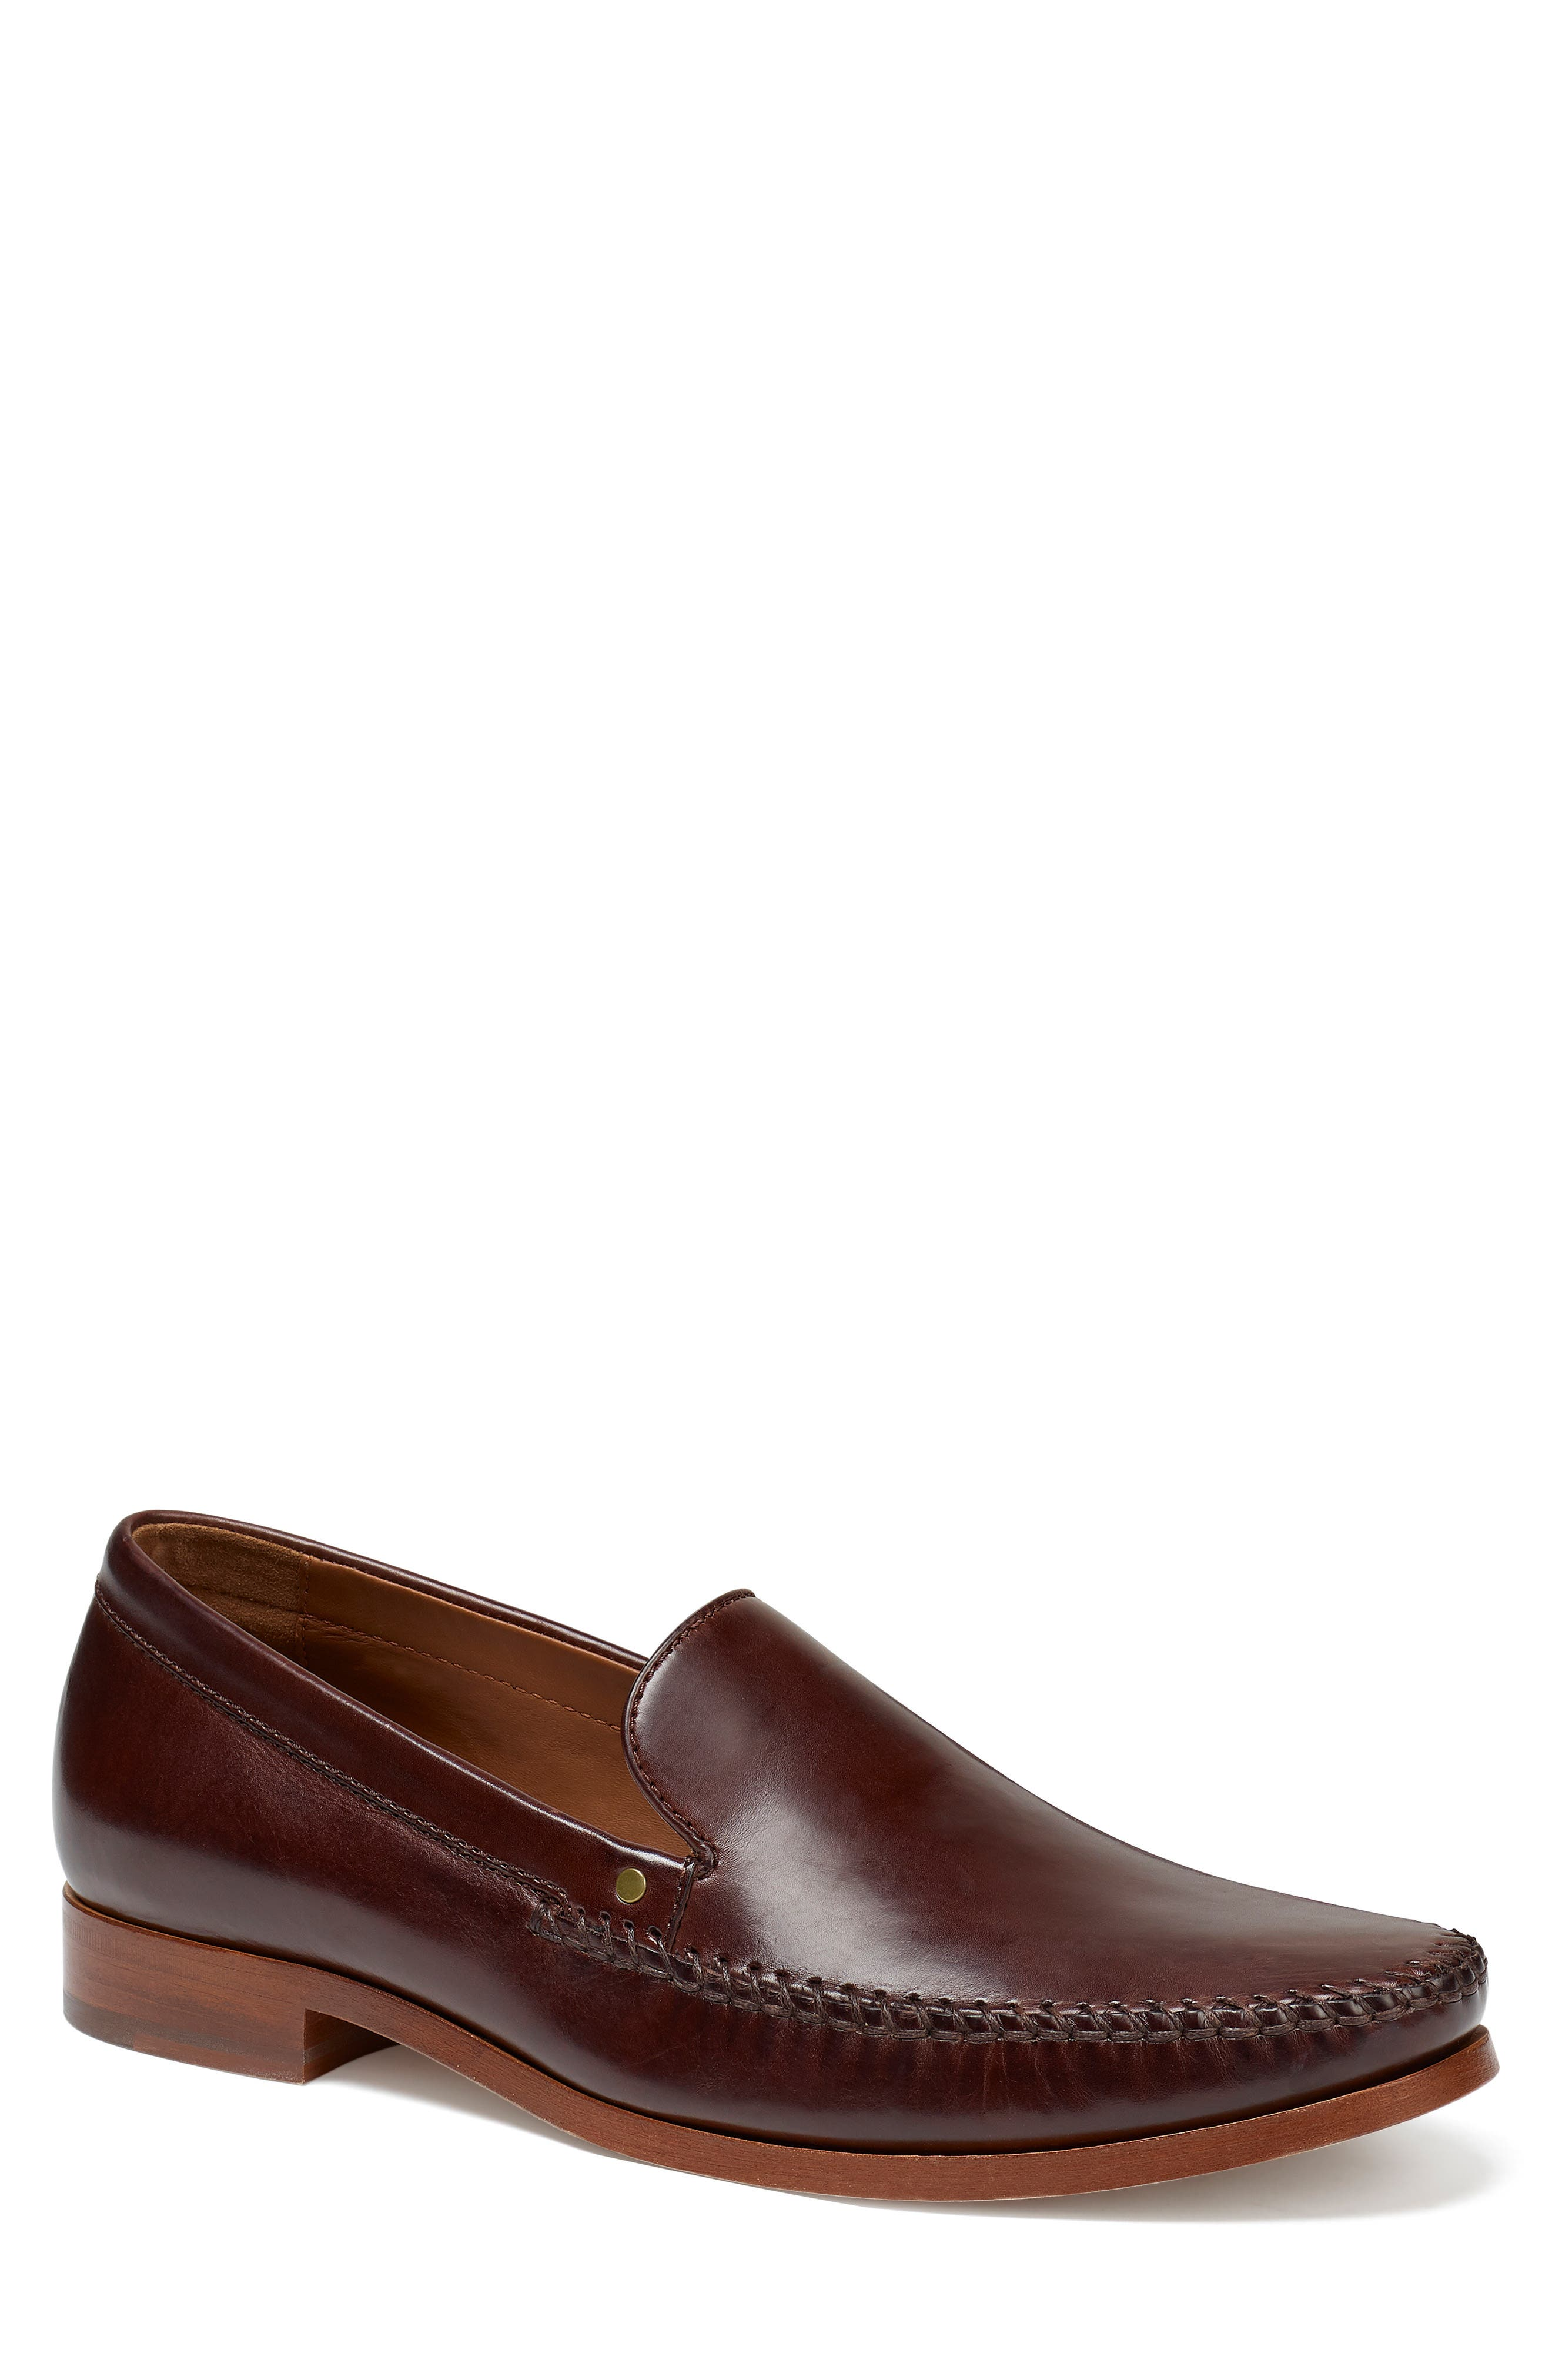 TRASK, 'Seth' Loafer, Main thumbnail 1, color, BROWN